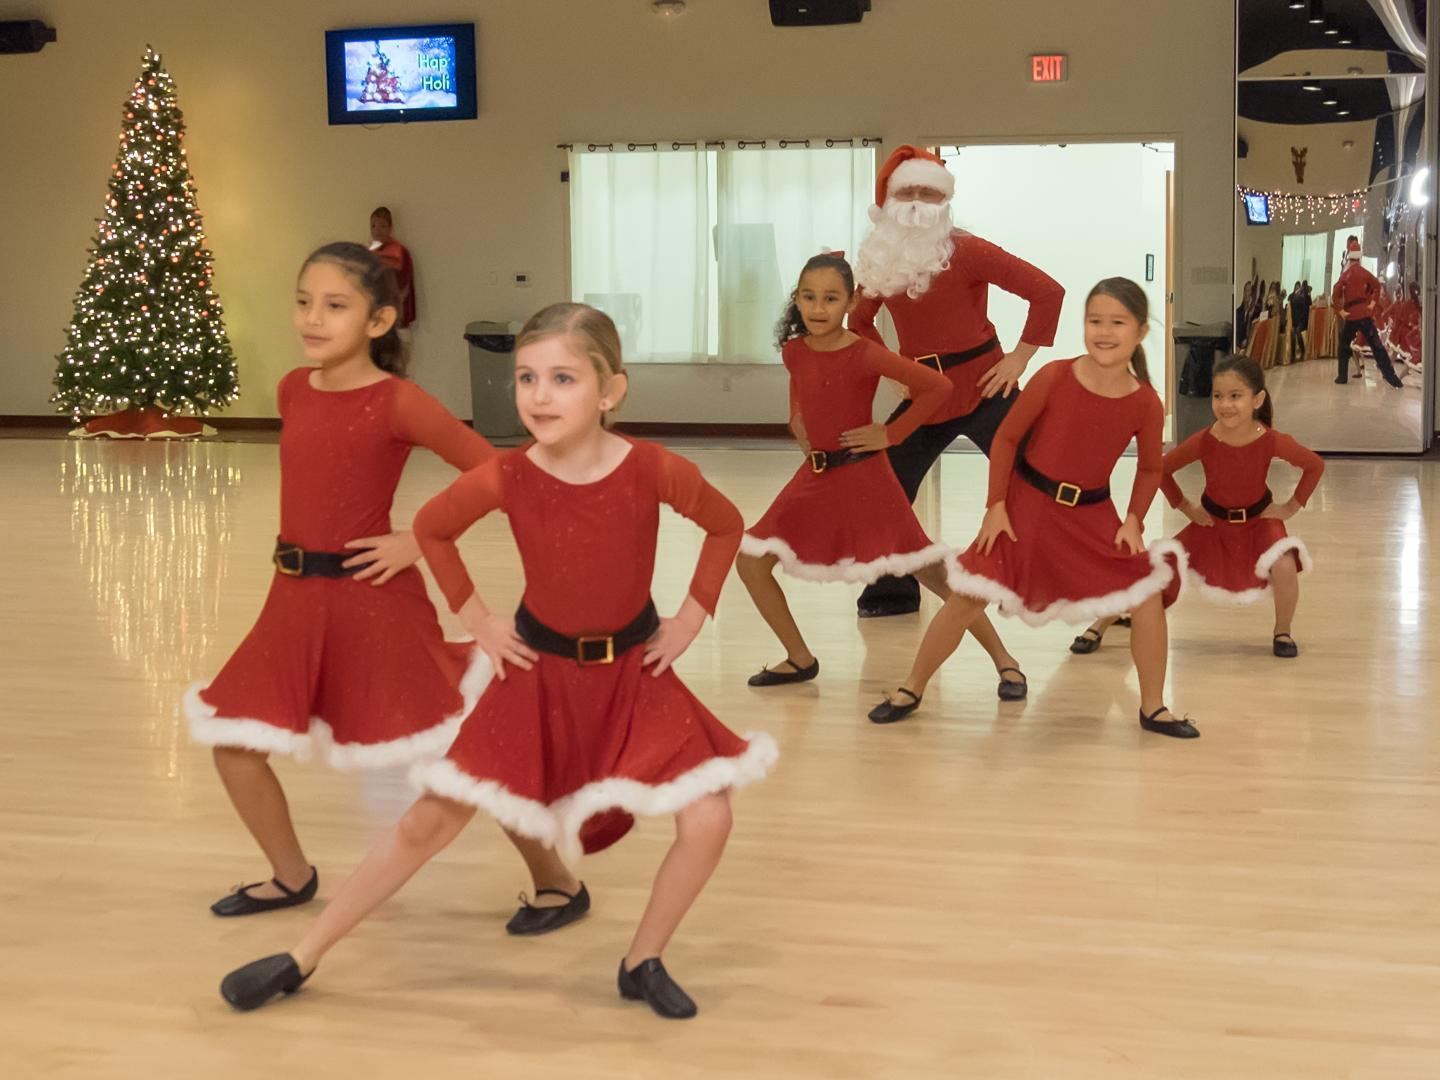 2016 Holiday Dance Showcase -  Beginner Child Ballroom class performance